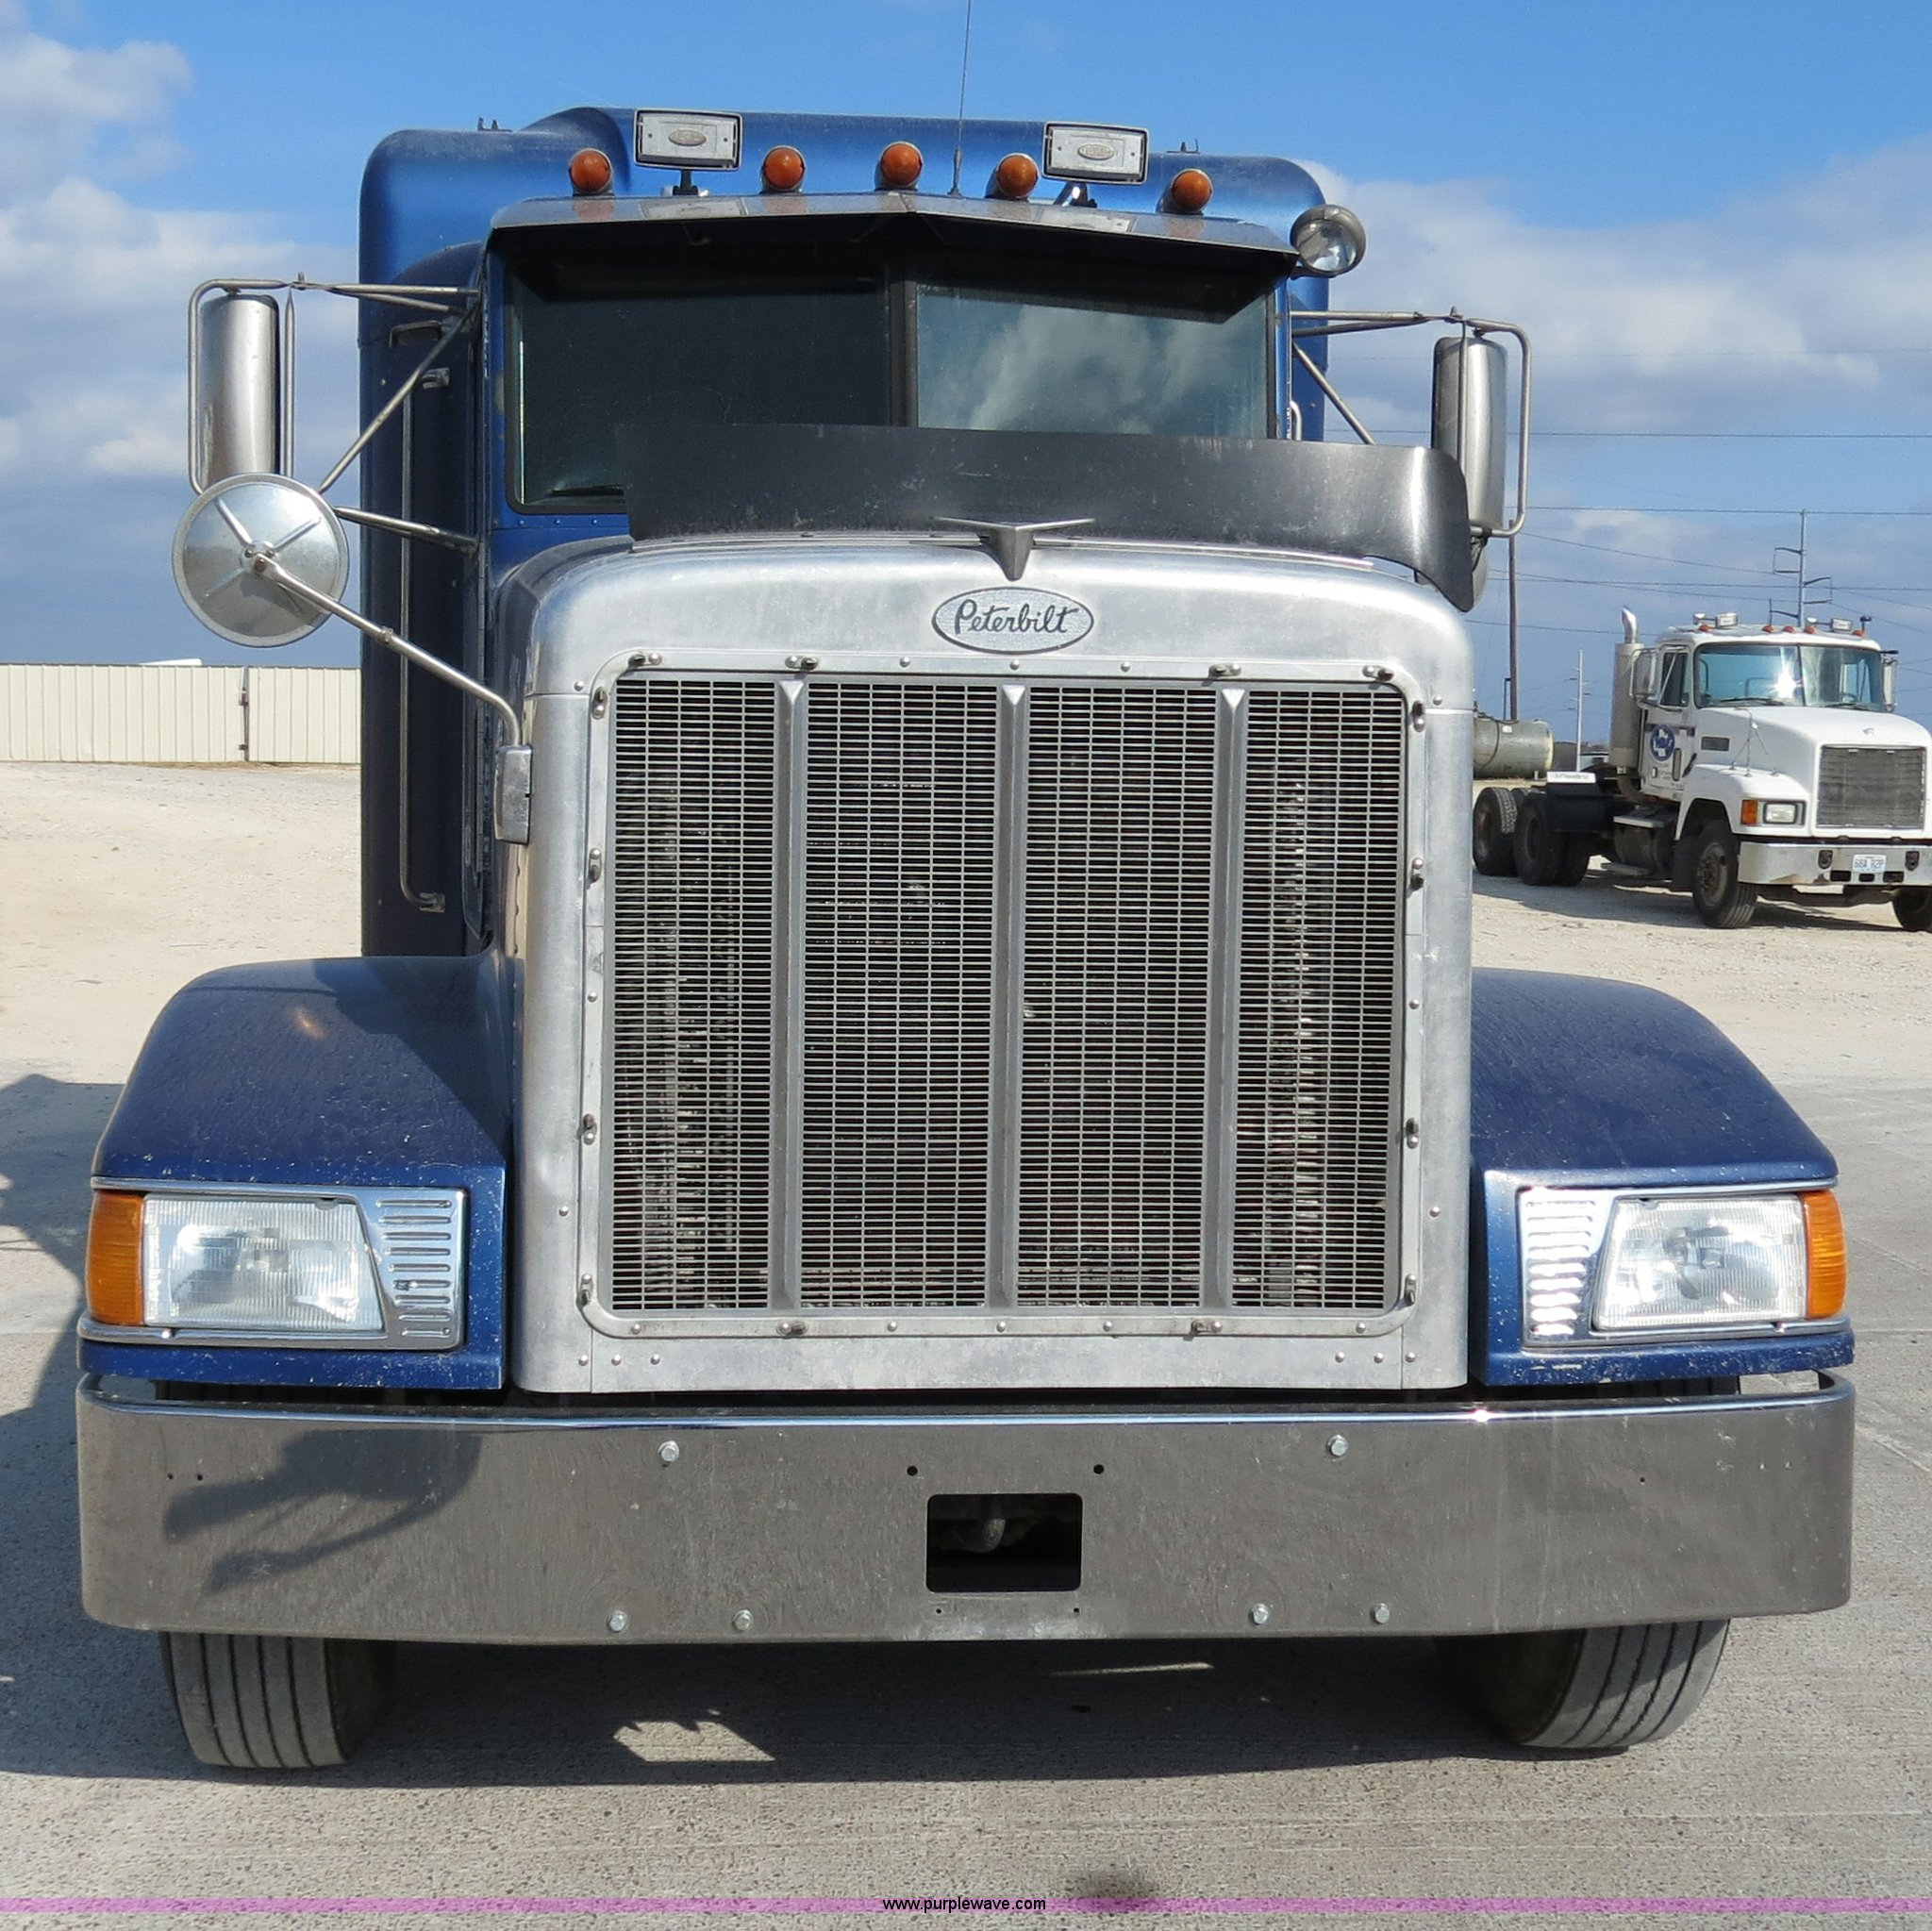 Magnificent 377 Peterbilt Wiring Diagram Photos - Electrical and ...